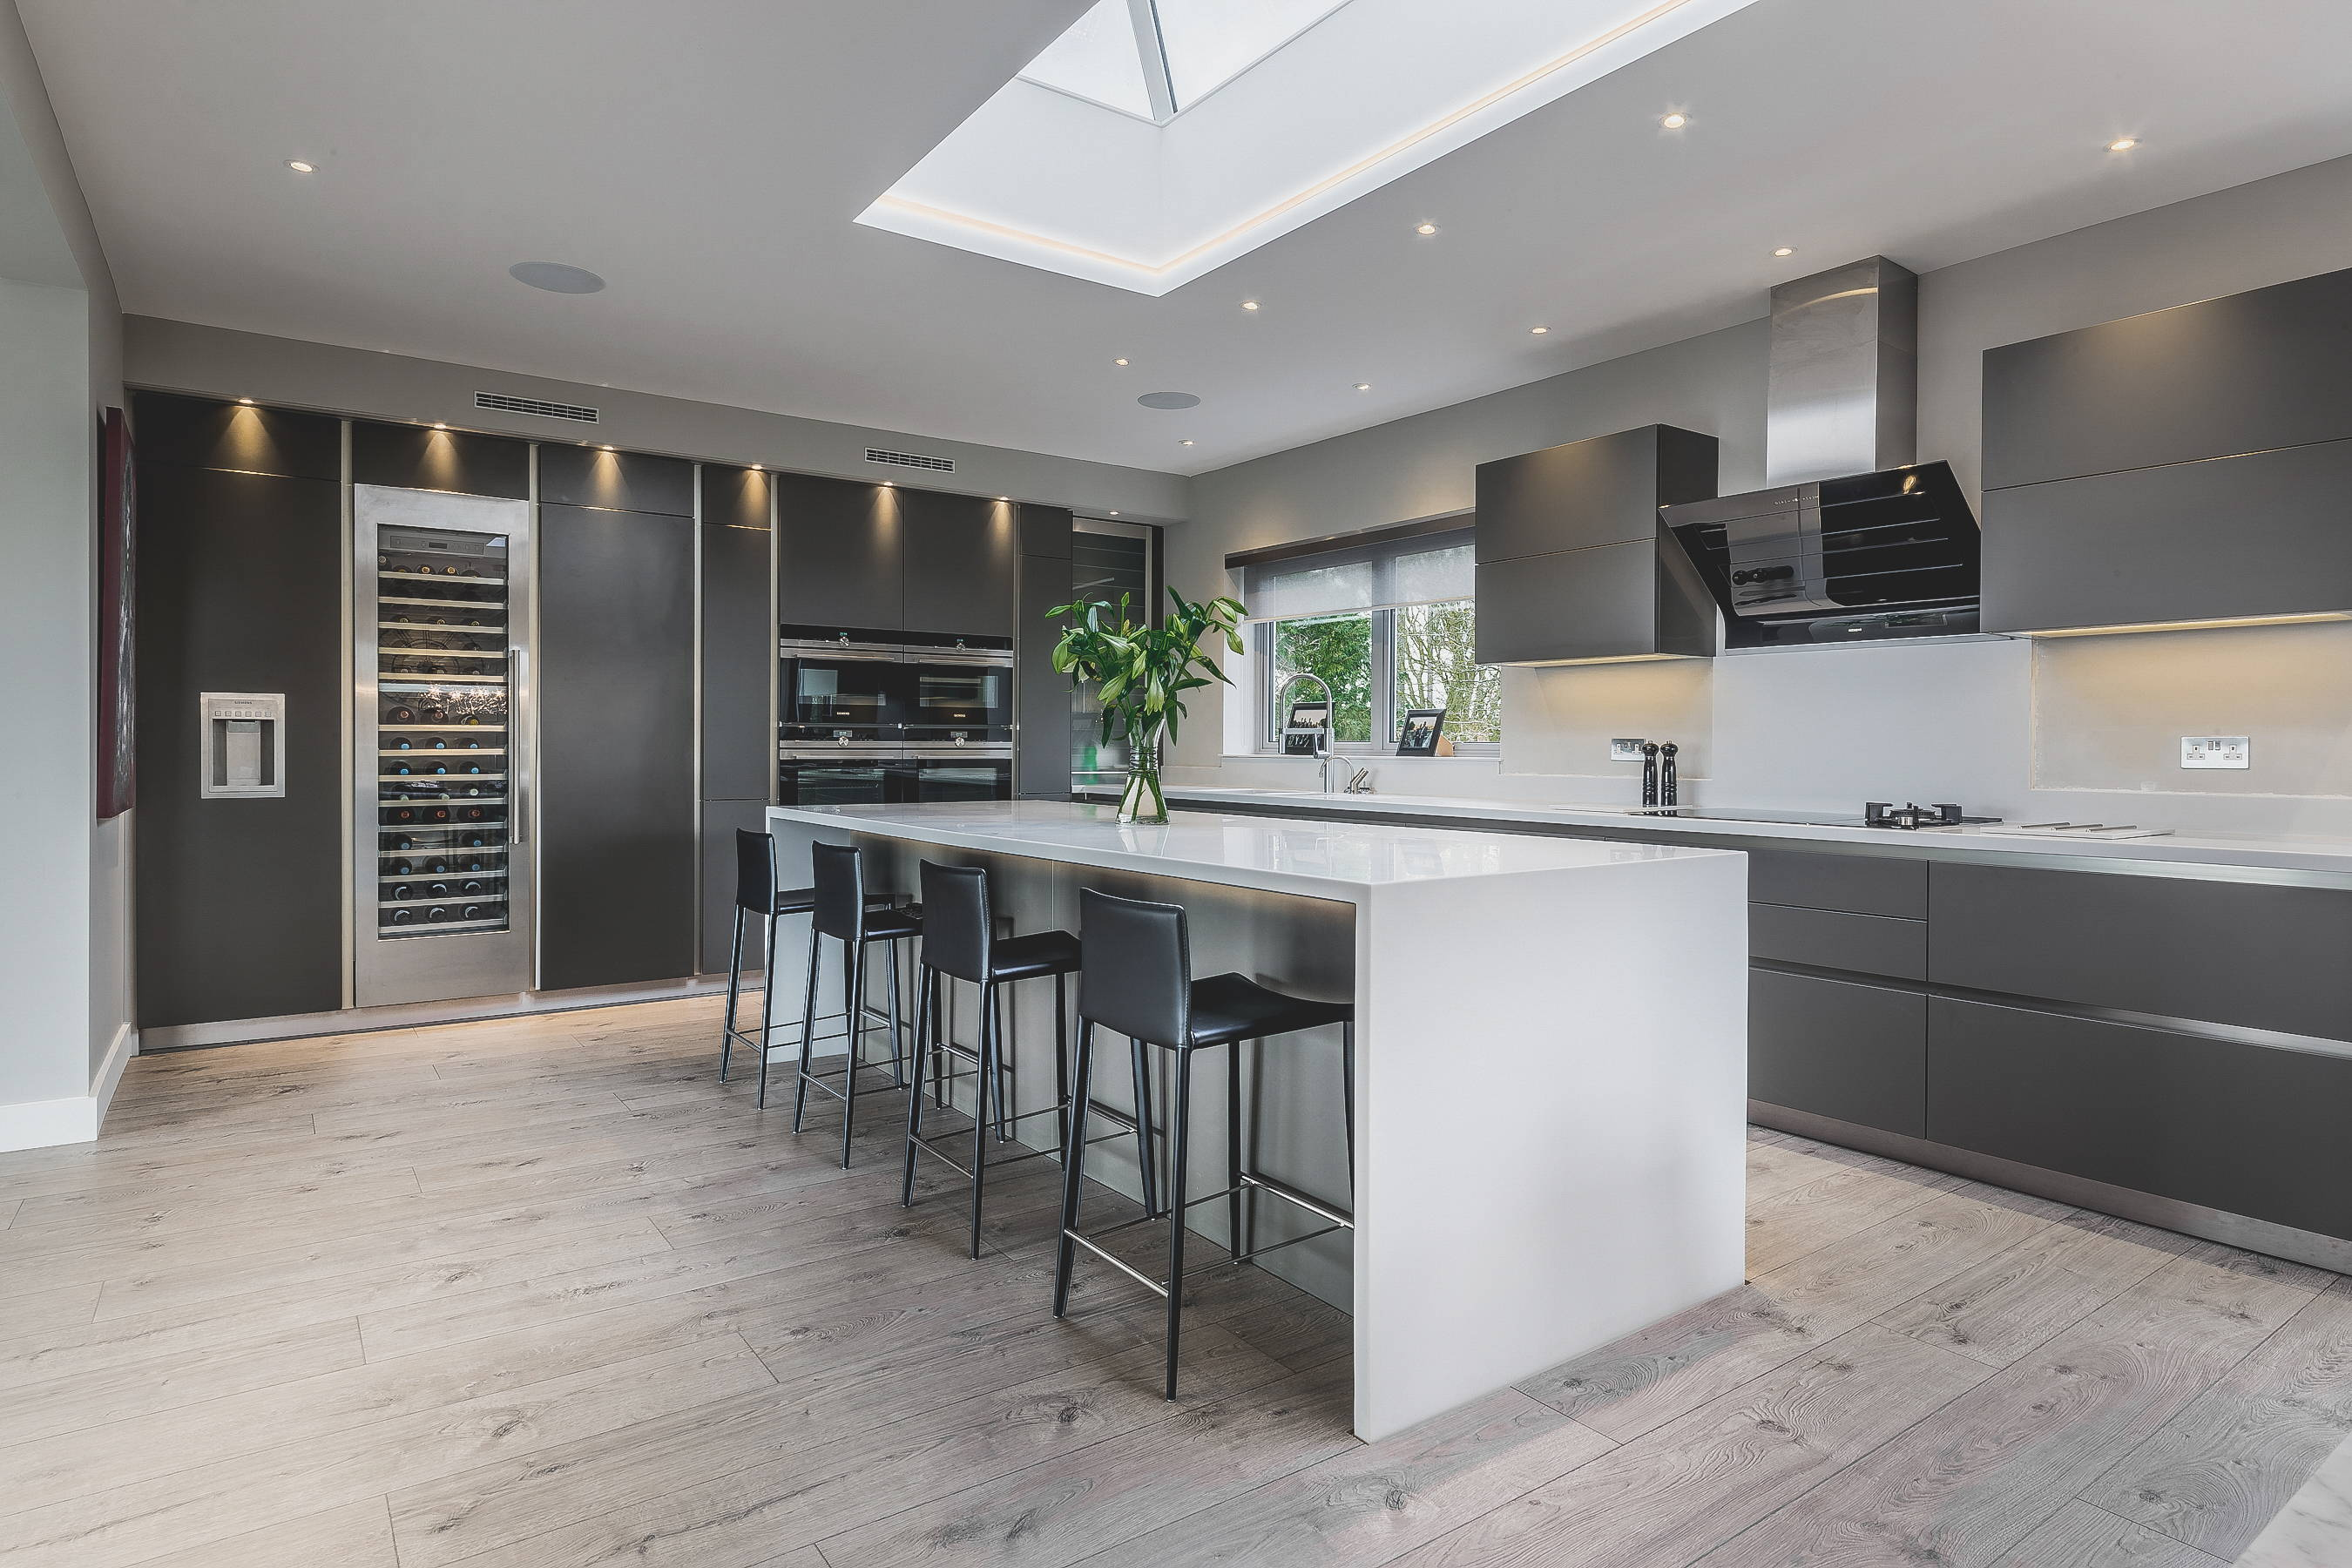 kitchen mood lighting. Try To Balance Bright Task Lighting With Soft Mood Lighting, As This Will Create An Accent In The Room And Separate Work Area From More Social Areas Kitchen